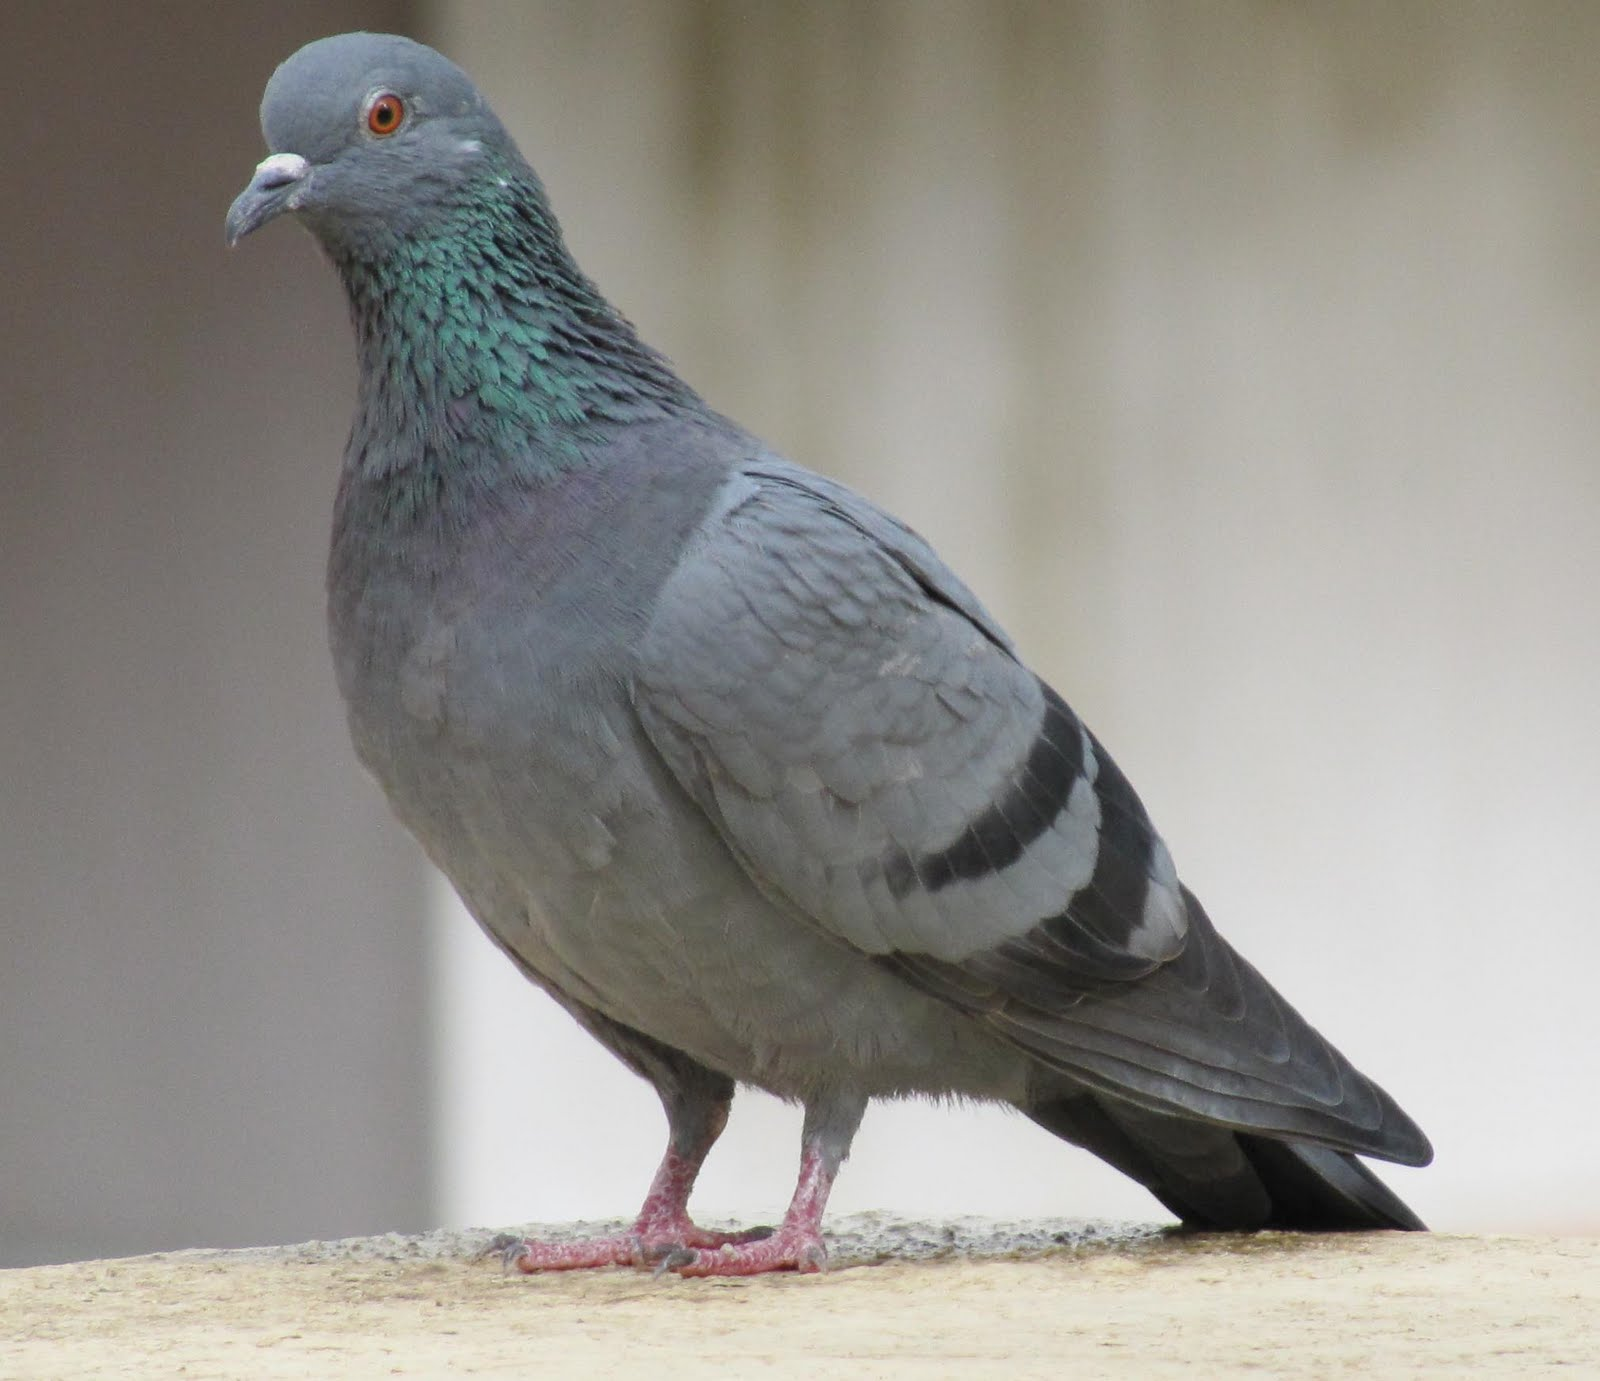 pigeon essay kids animal class birds pigeon pigeon are domestic kids kids album rhymes baby s articles learning centre animals gallery astrology vedic astrology